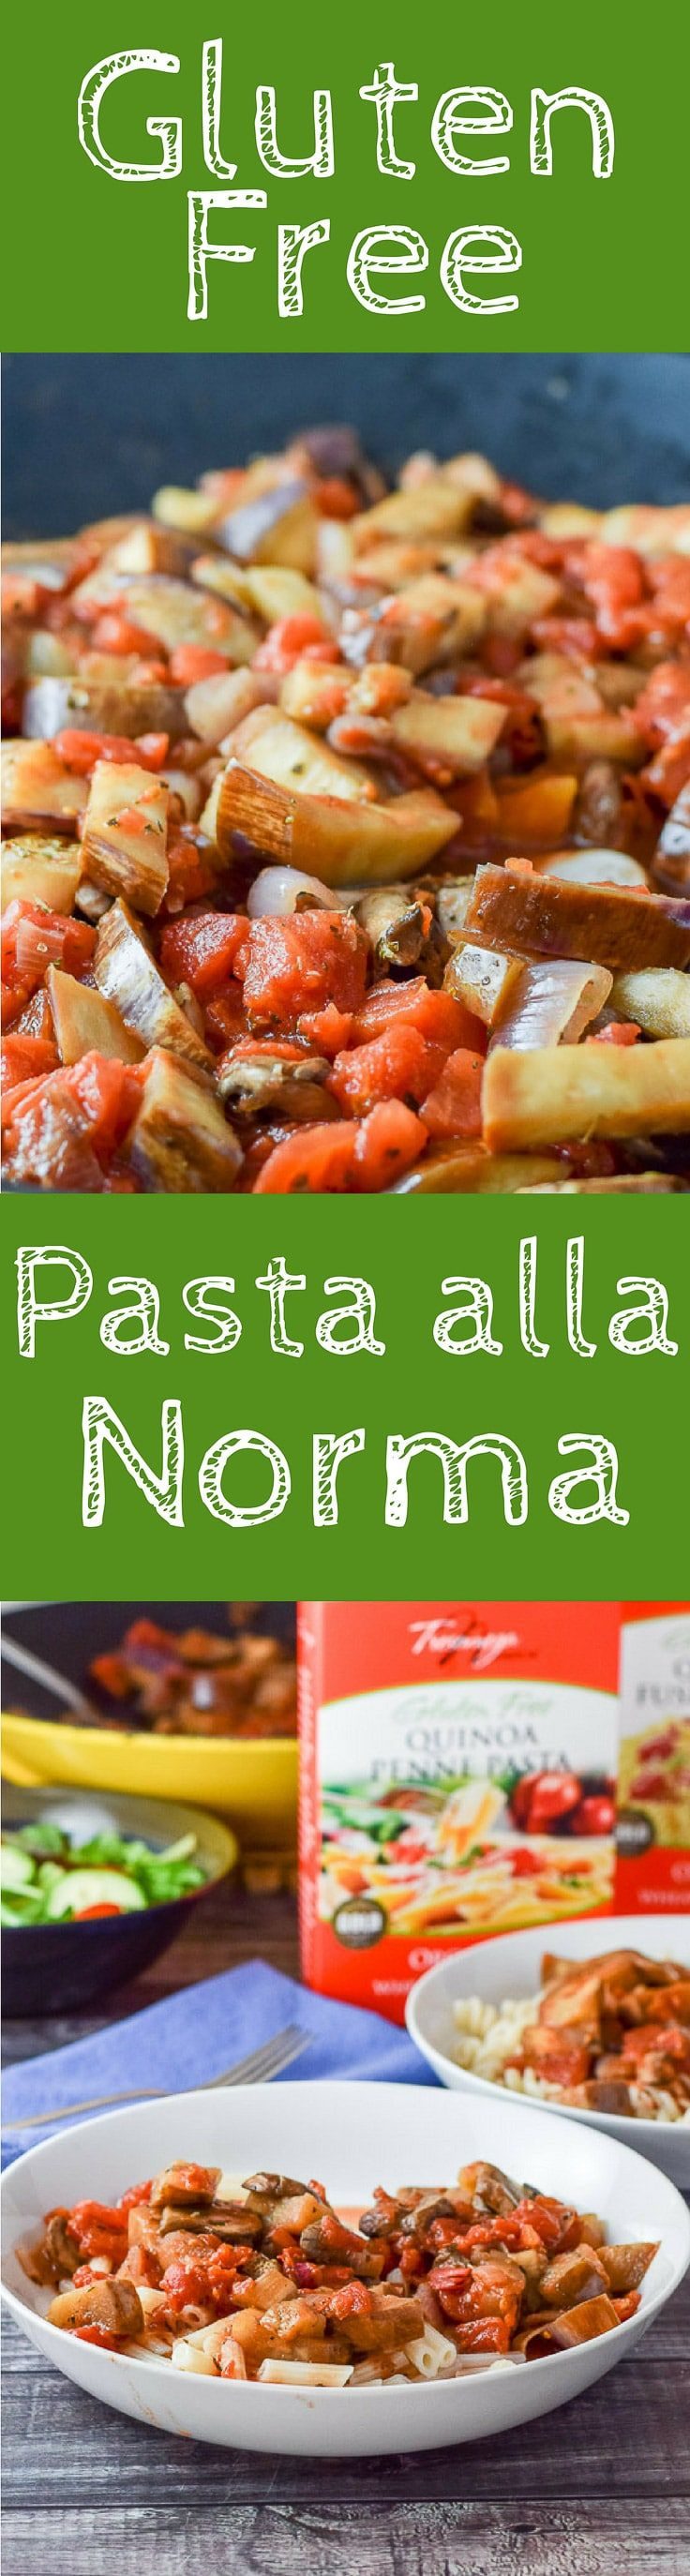 #ad Gluten free pasta alla Norma is so good you'll never know it's gluten free. It cooks up perfectly and is so delicious with the eggplant, shallots, mushrooms and diced tomatoes! #Tresomega #OrganicsForLife https://ddel.co/gfpanor